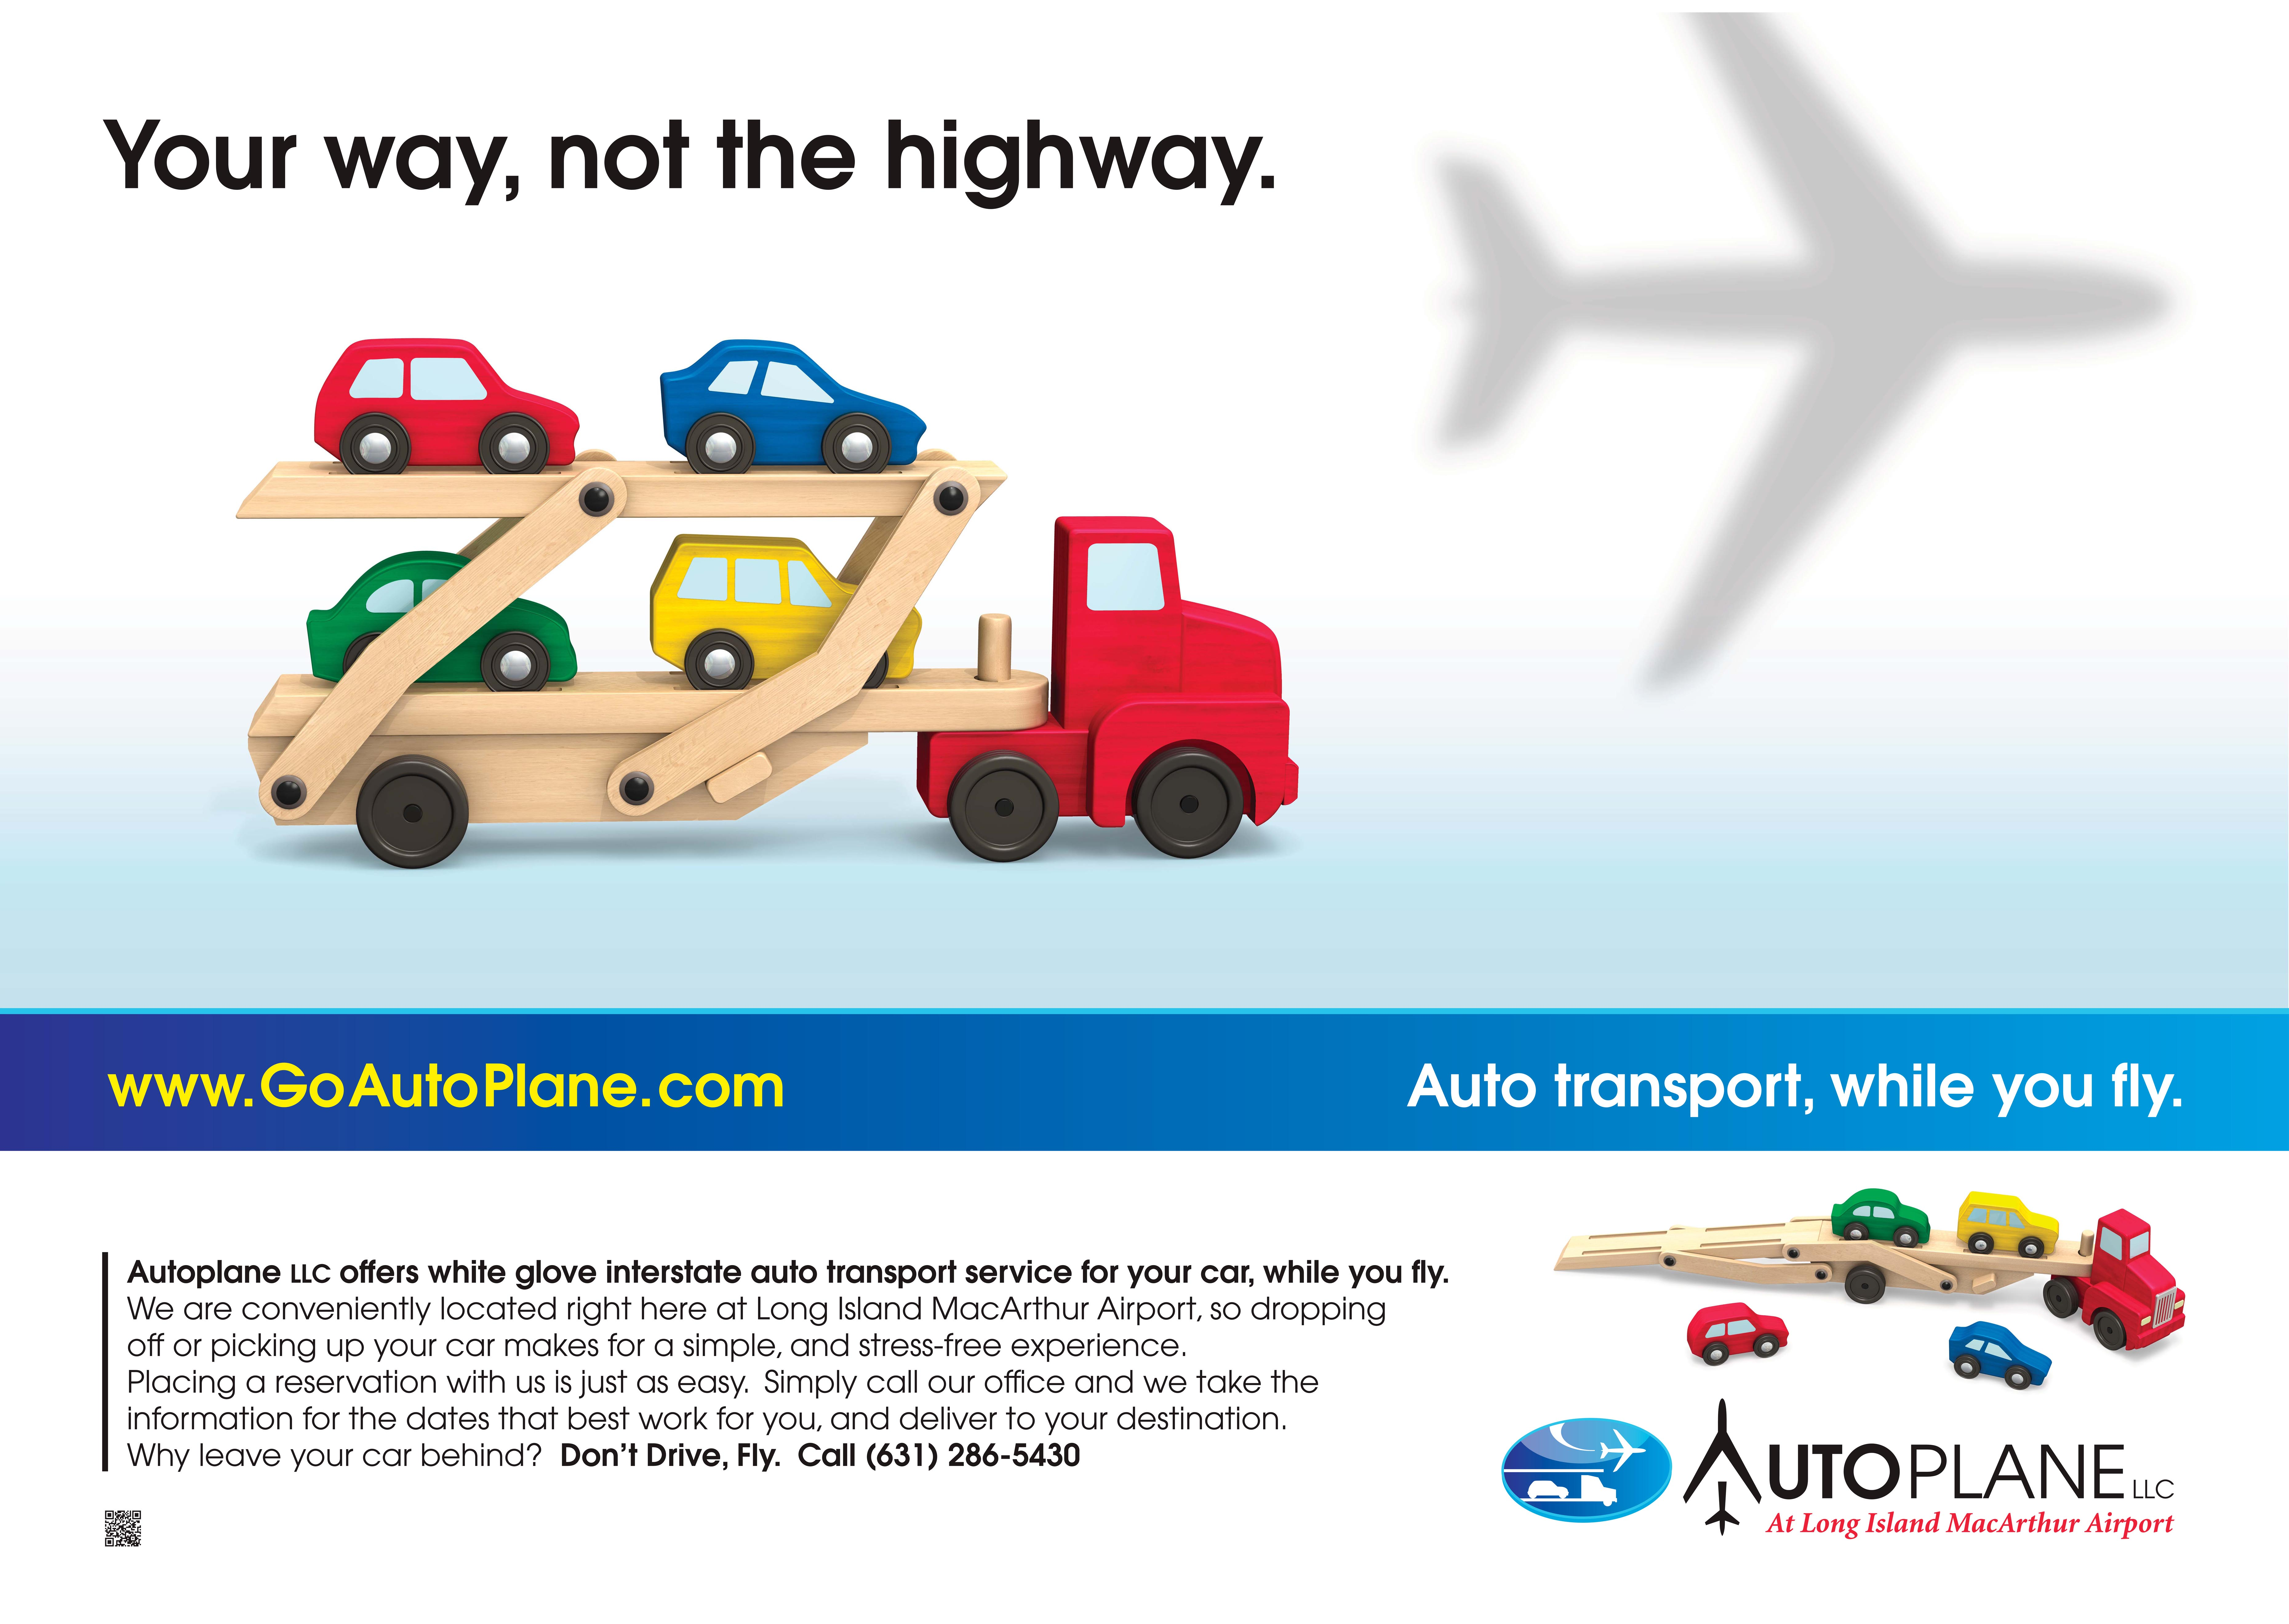 Please Click Here To Visit The Official Website of AutoPlane